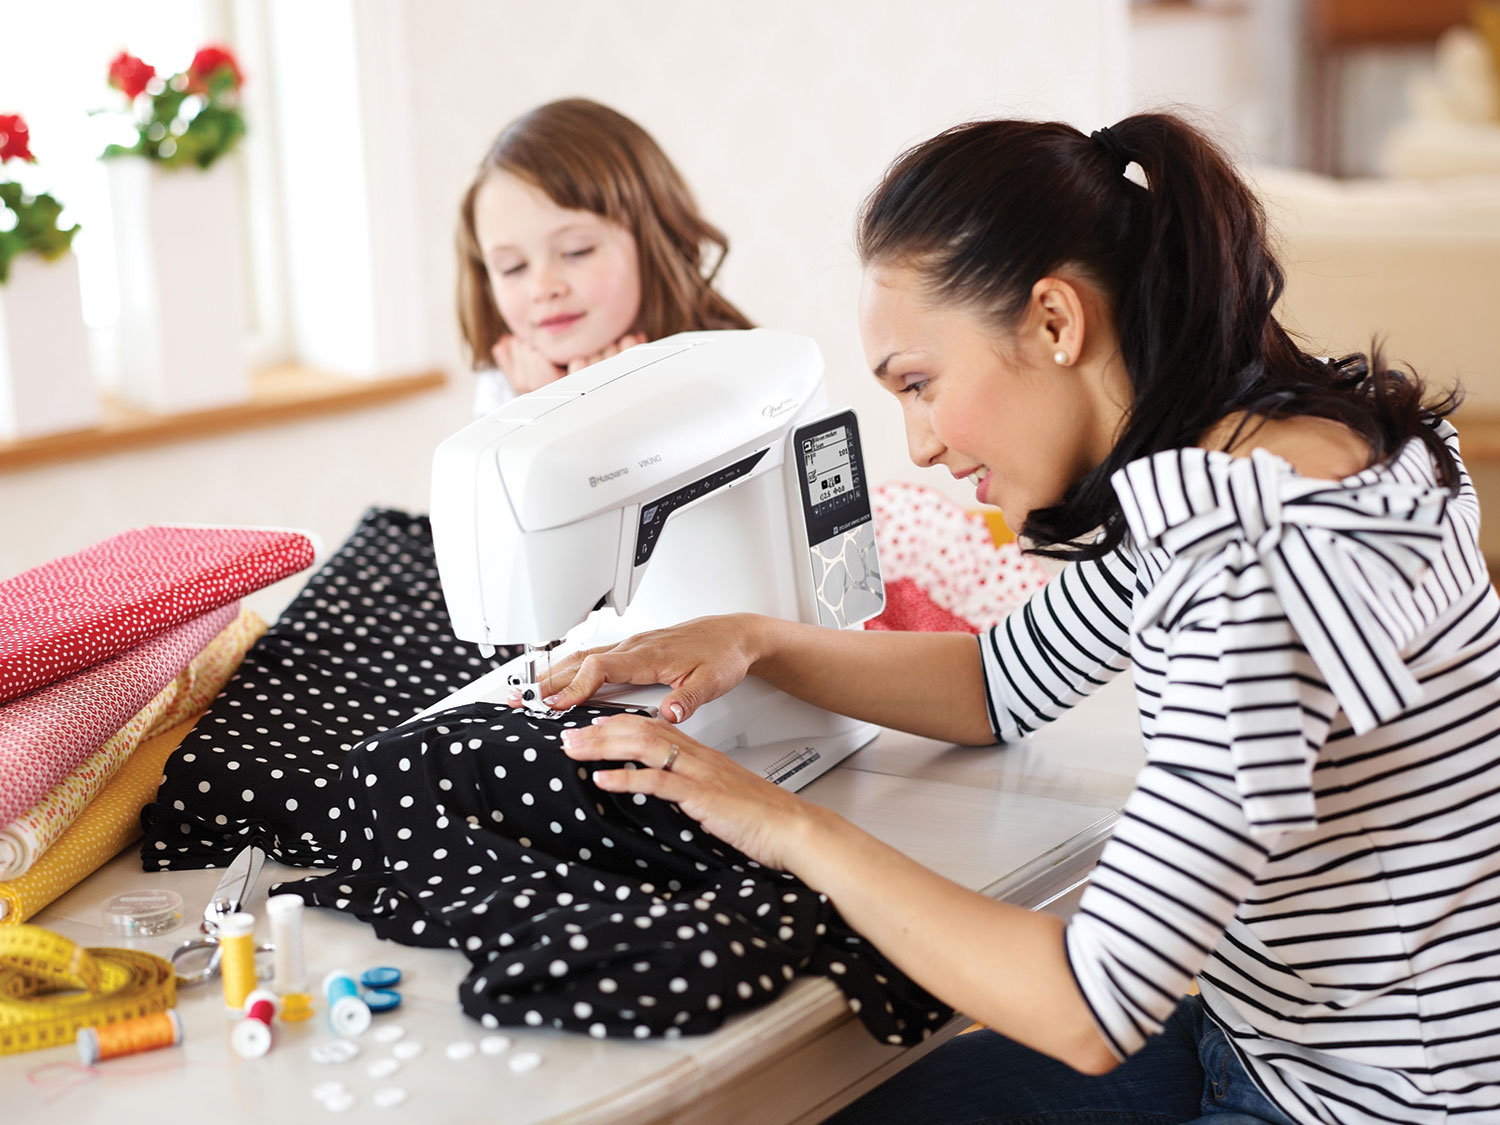 Woman Sewing with the Opal 690Q